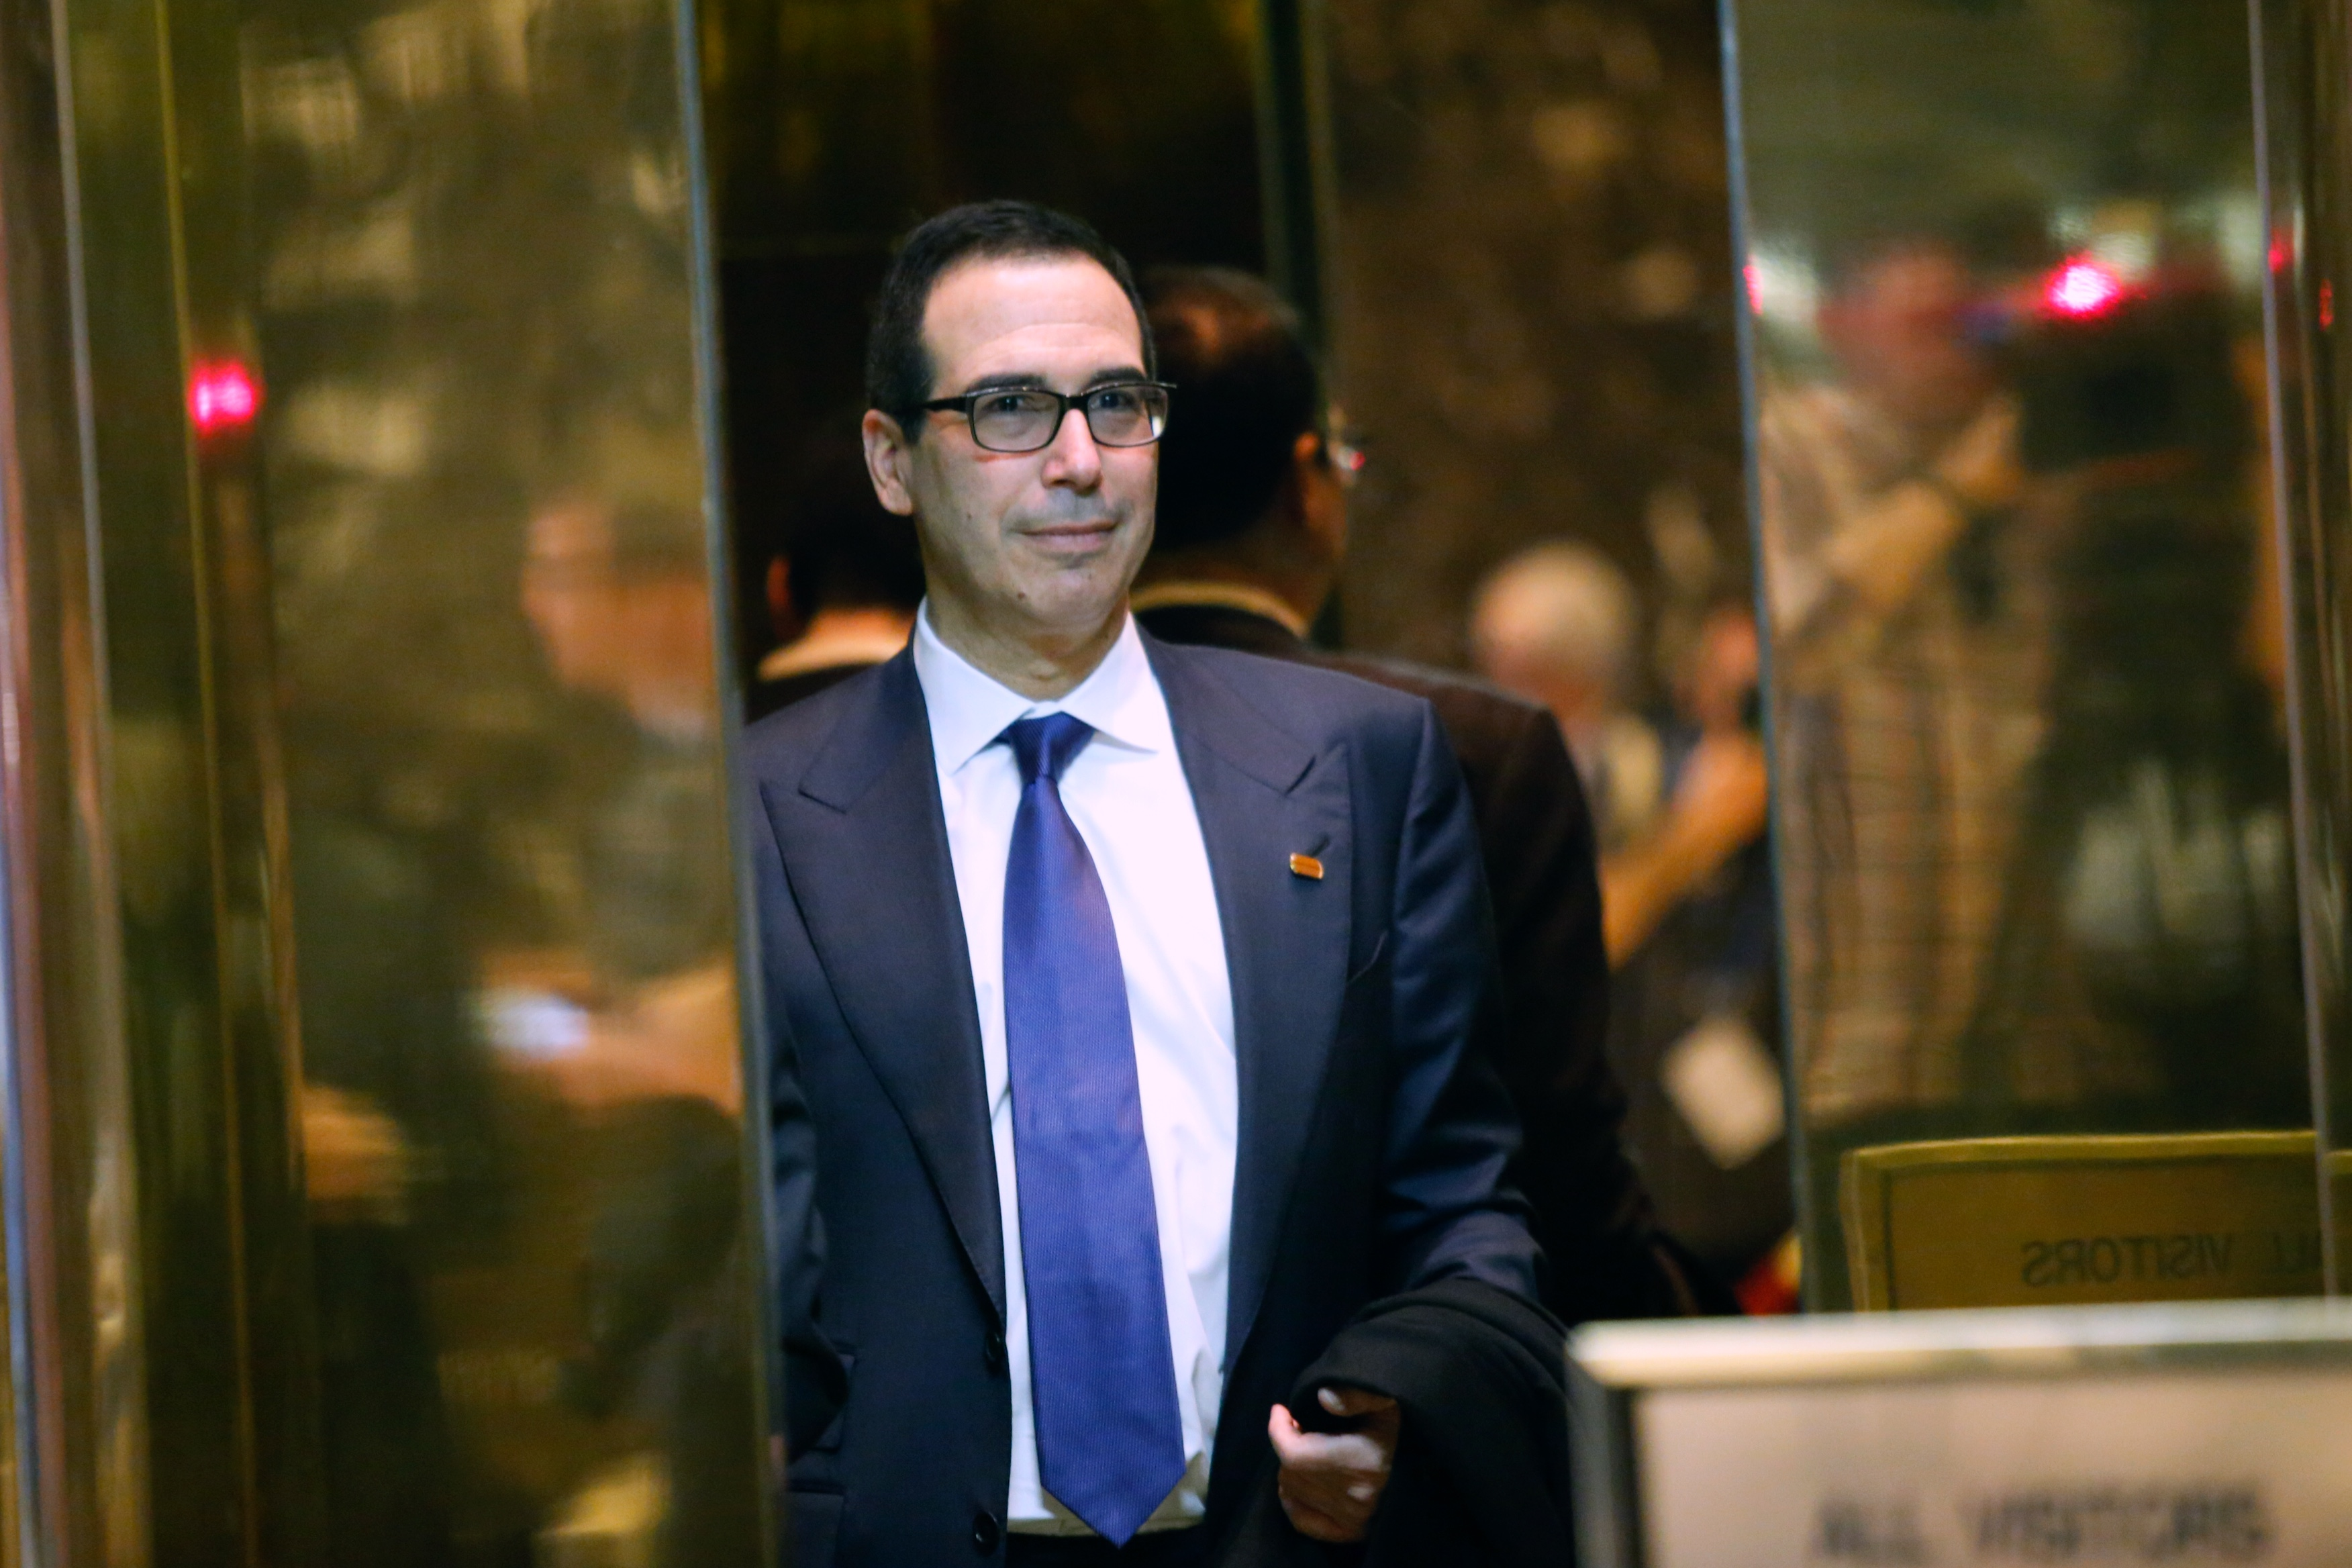 Treasury secretary nominee Steven Mnuchin arrives at the Trump Tower for meetings with President-elect Donald Trump.